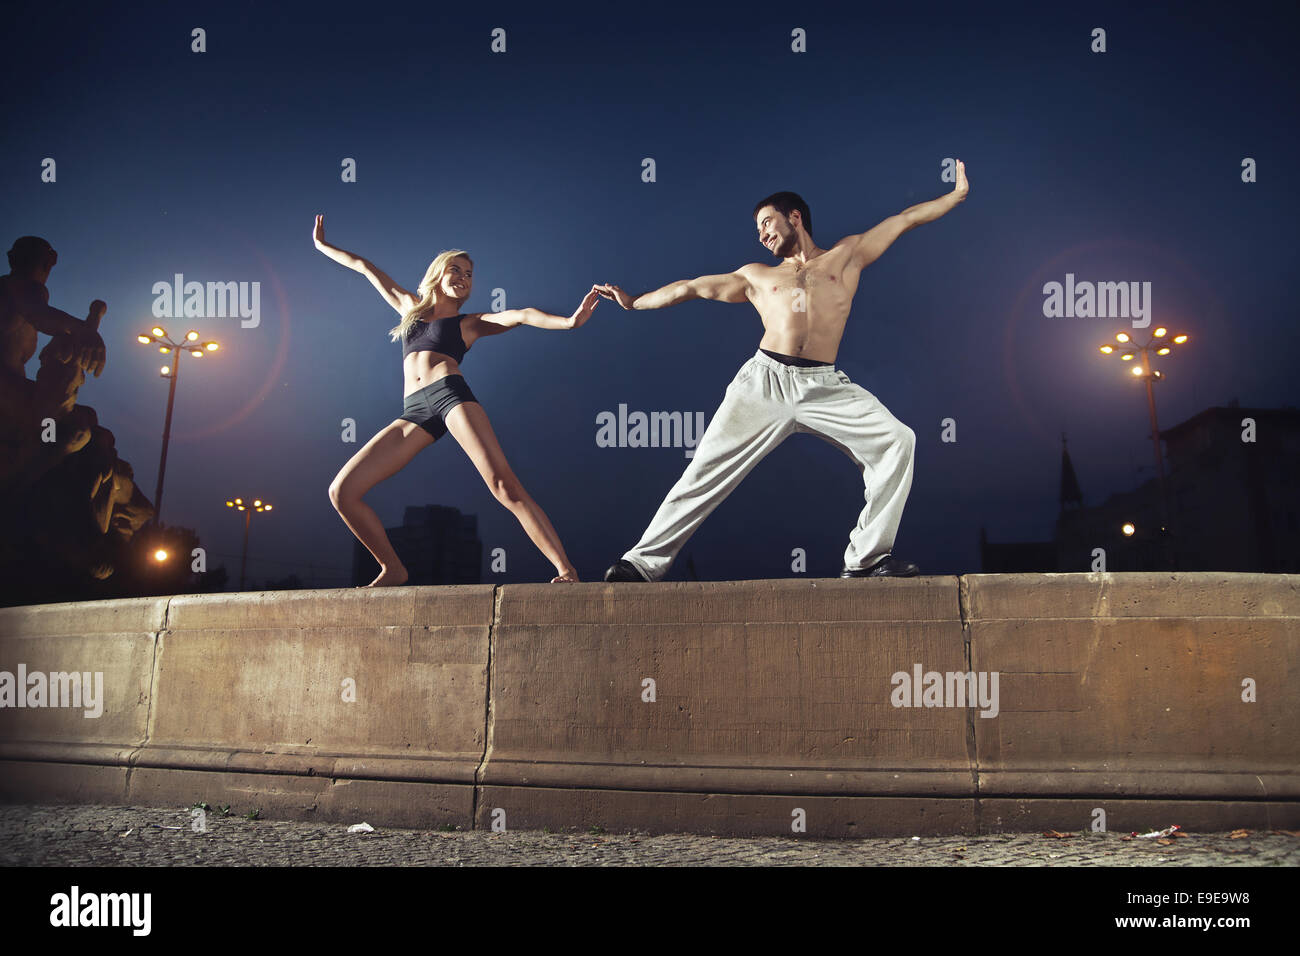 Two cheerful athletes practicing in the night - Stock Image